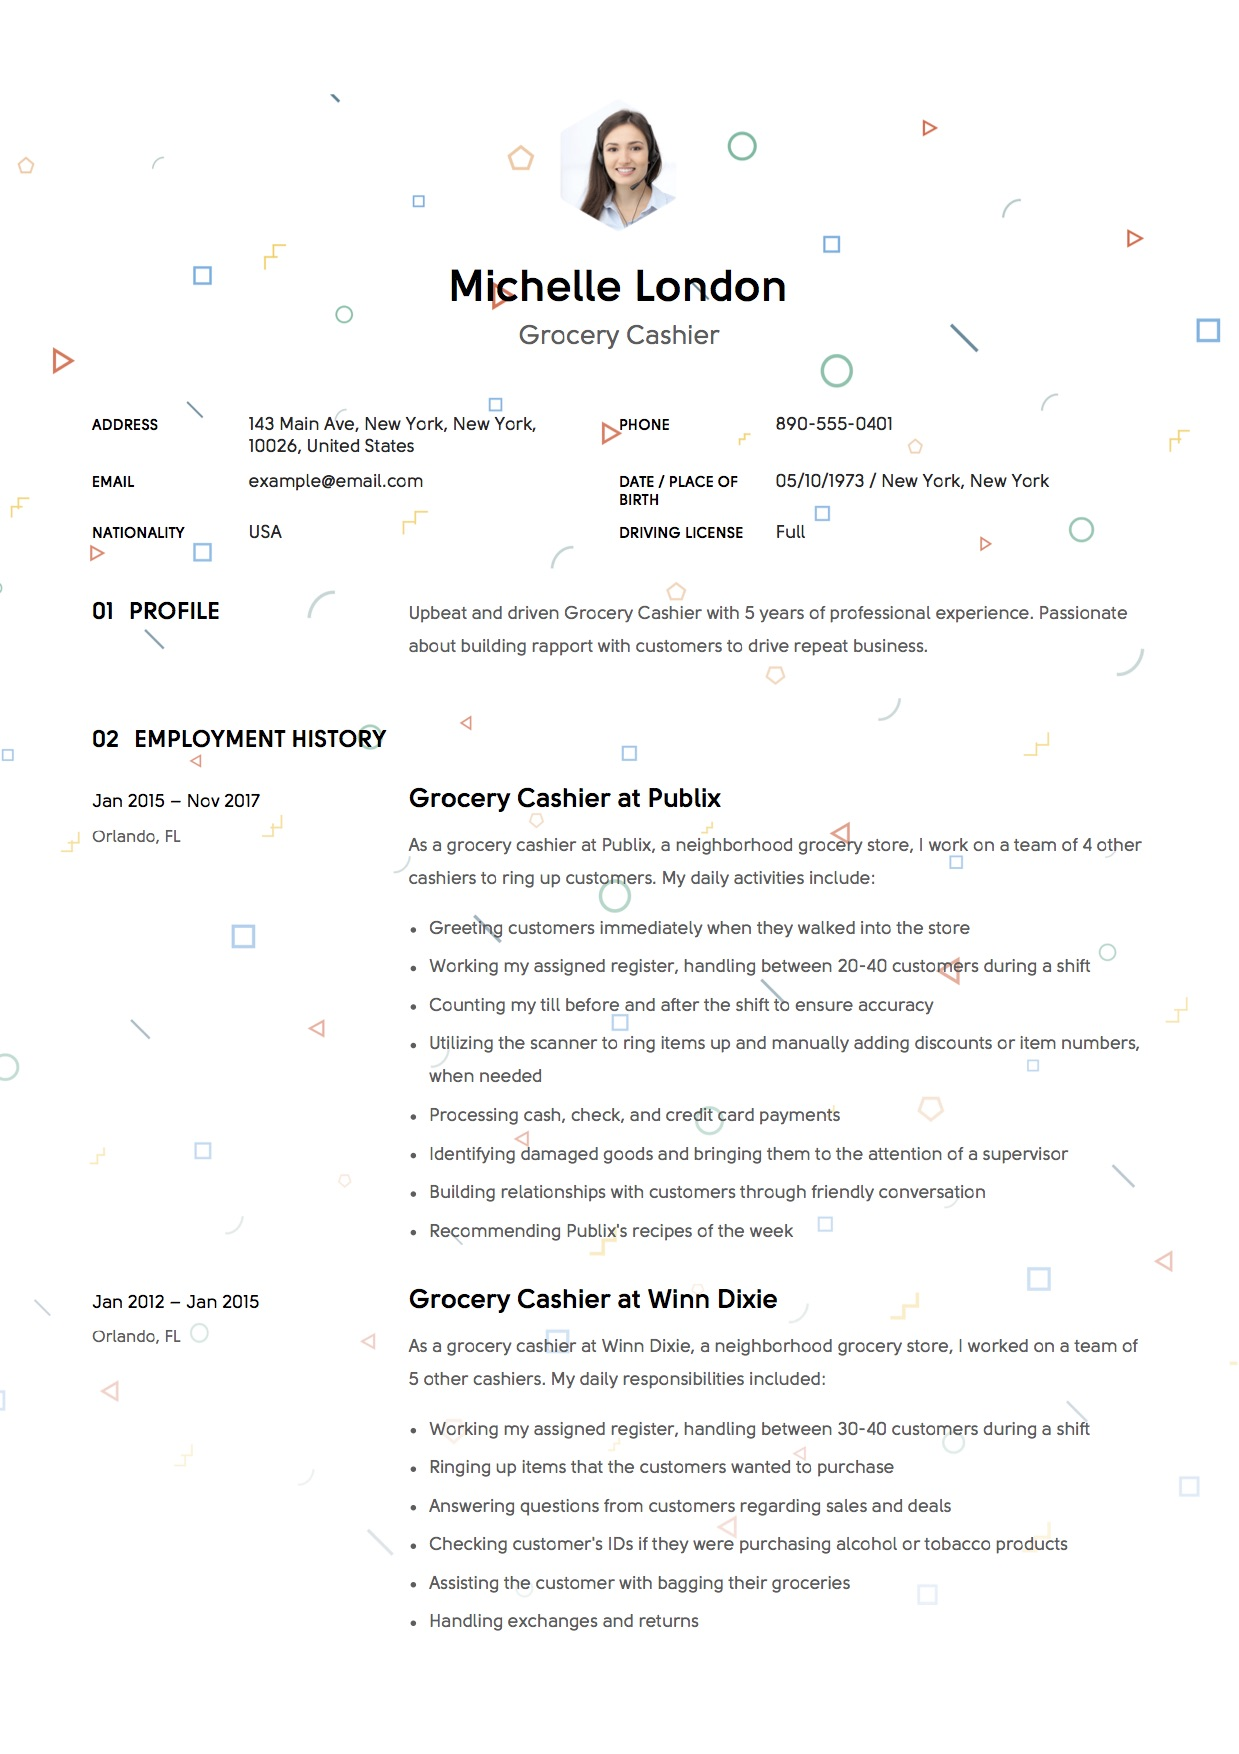 Design Resume Grocery Cashier